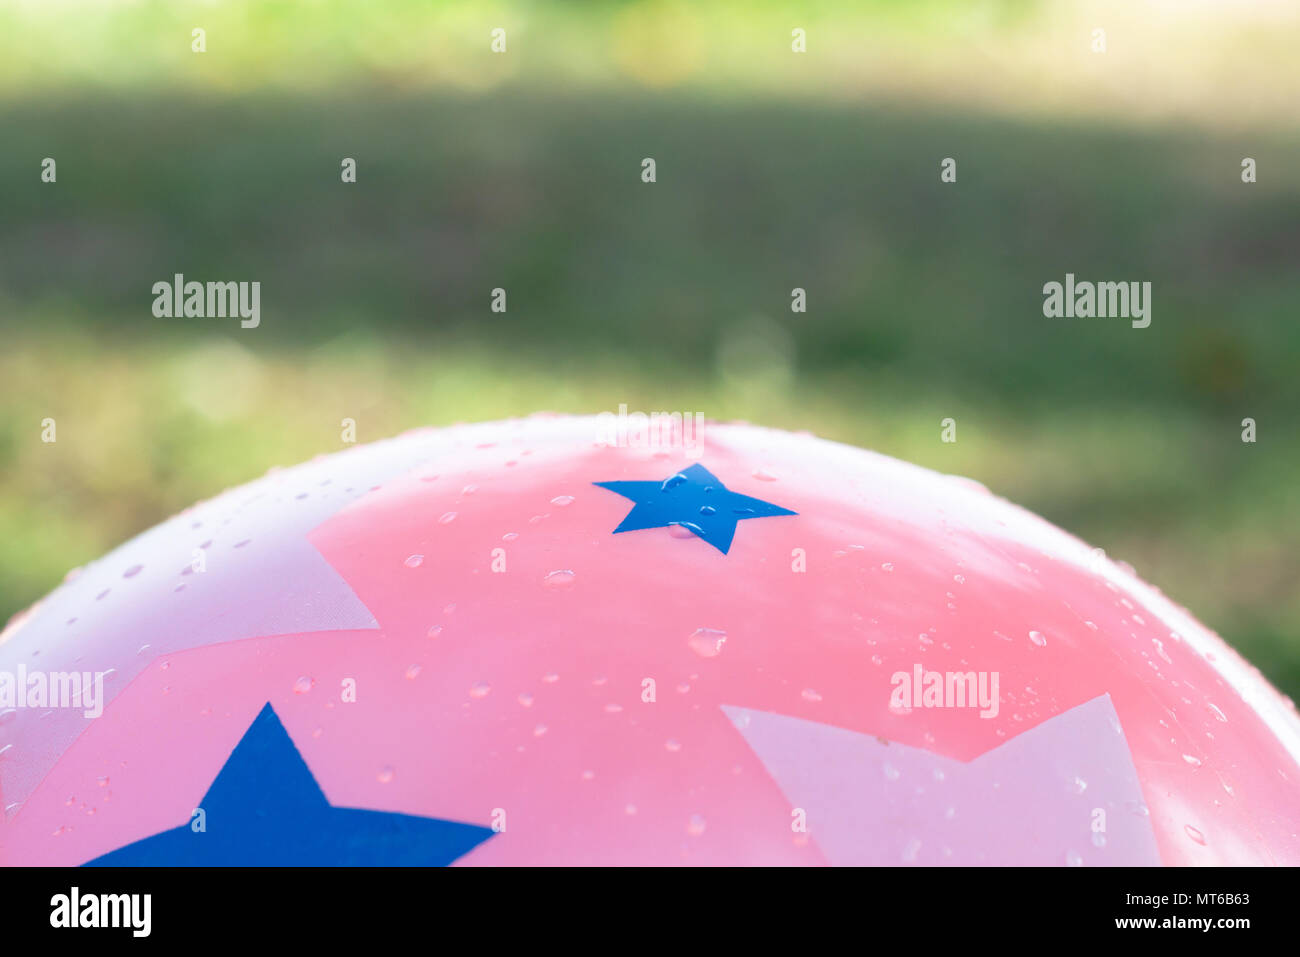 Wet pink ball and abtract background of green nature - Stock Image